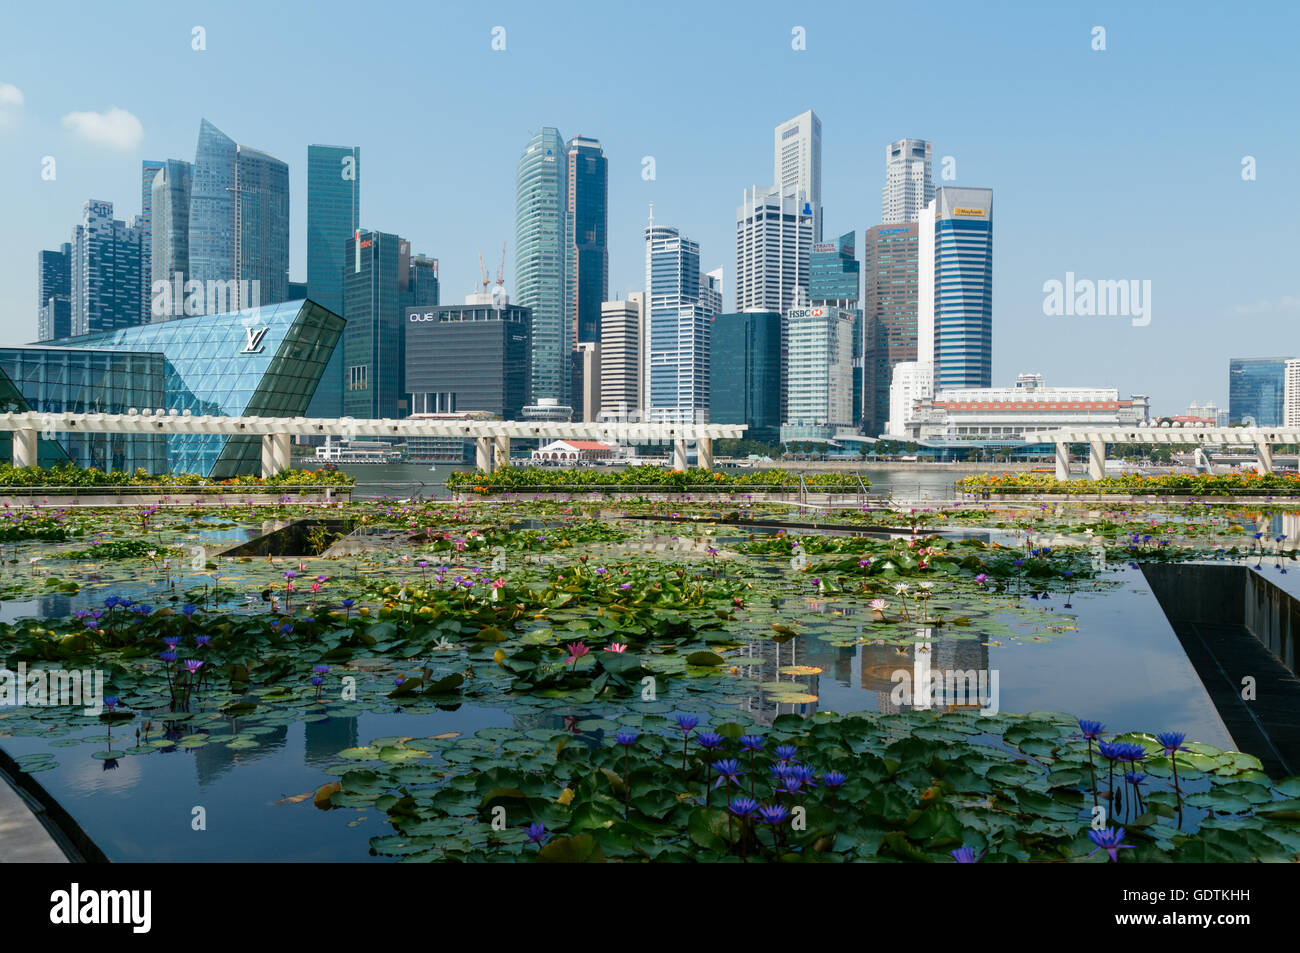 Singapore, Singapore - February 10, 2014: Singapore Central Business district skyline view with a  blooming lily - Stock Image